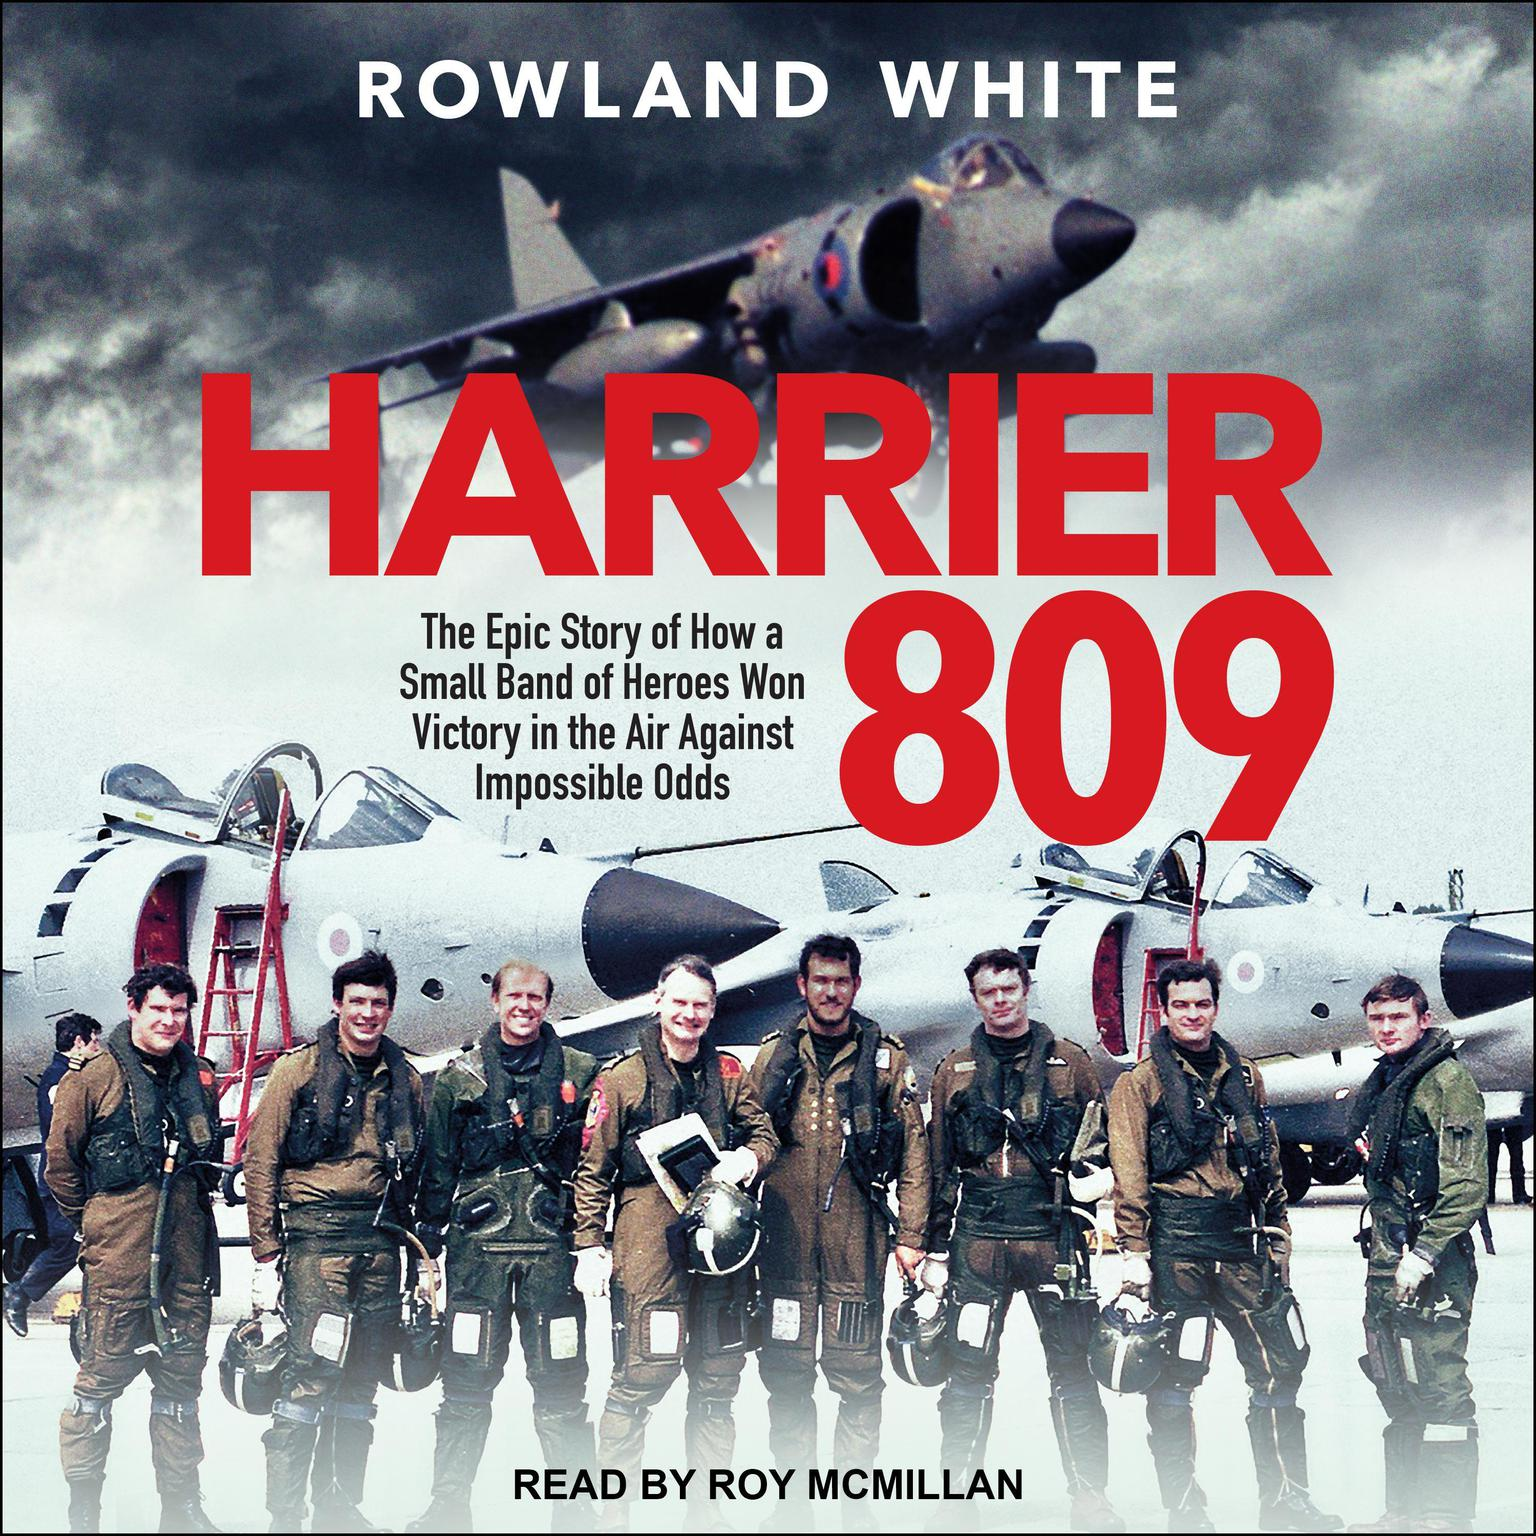 Harrier 809: The Epic Story of How a Small Band of Heroes Won Victory in the Air Against Impossible Odds Audiobook, by Rowland White